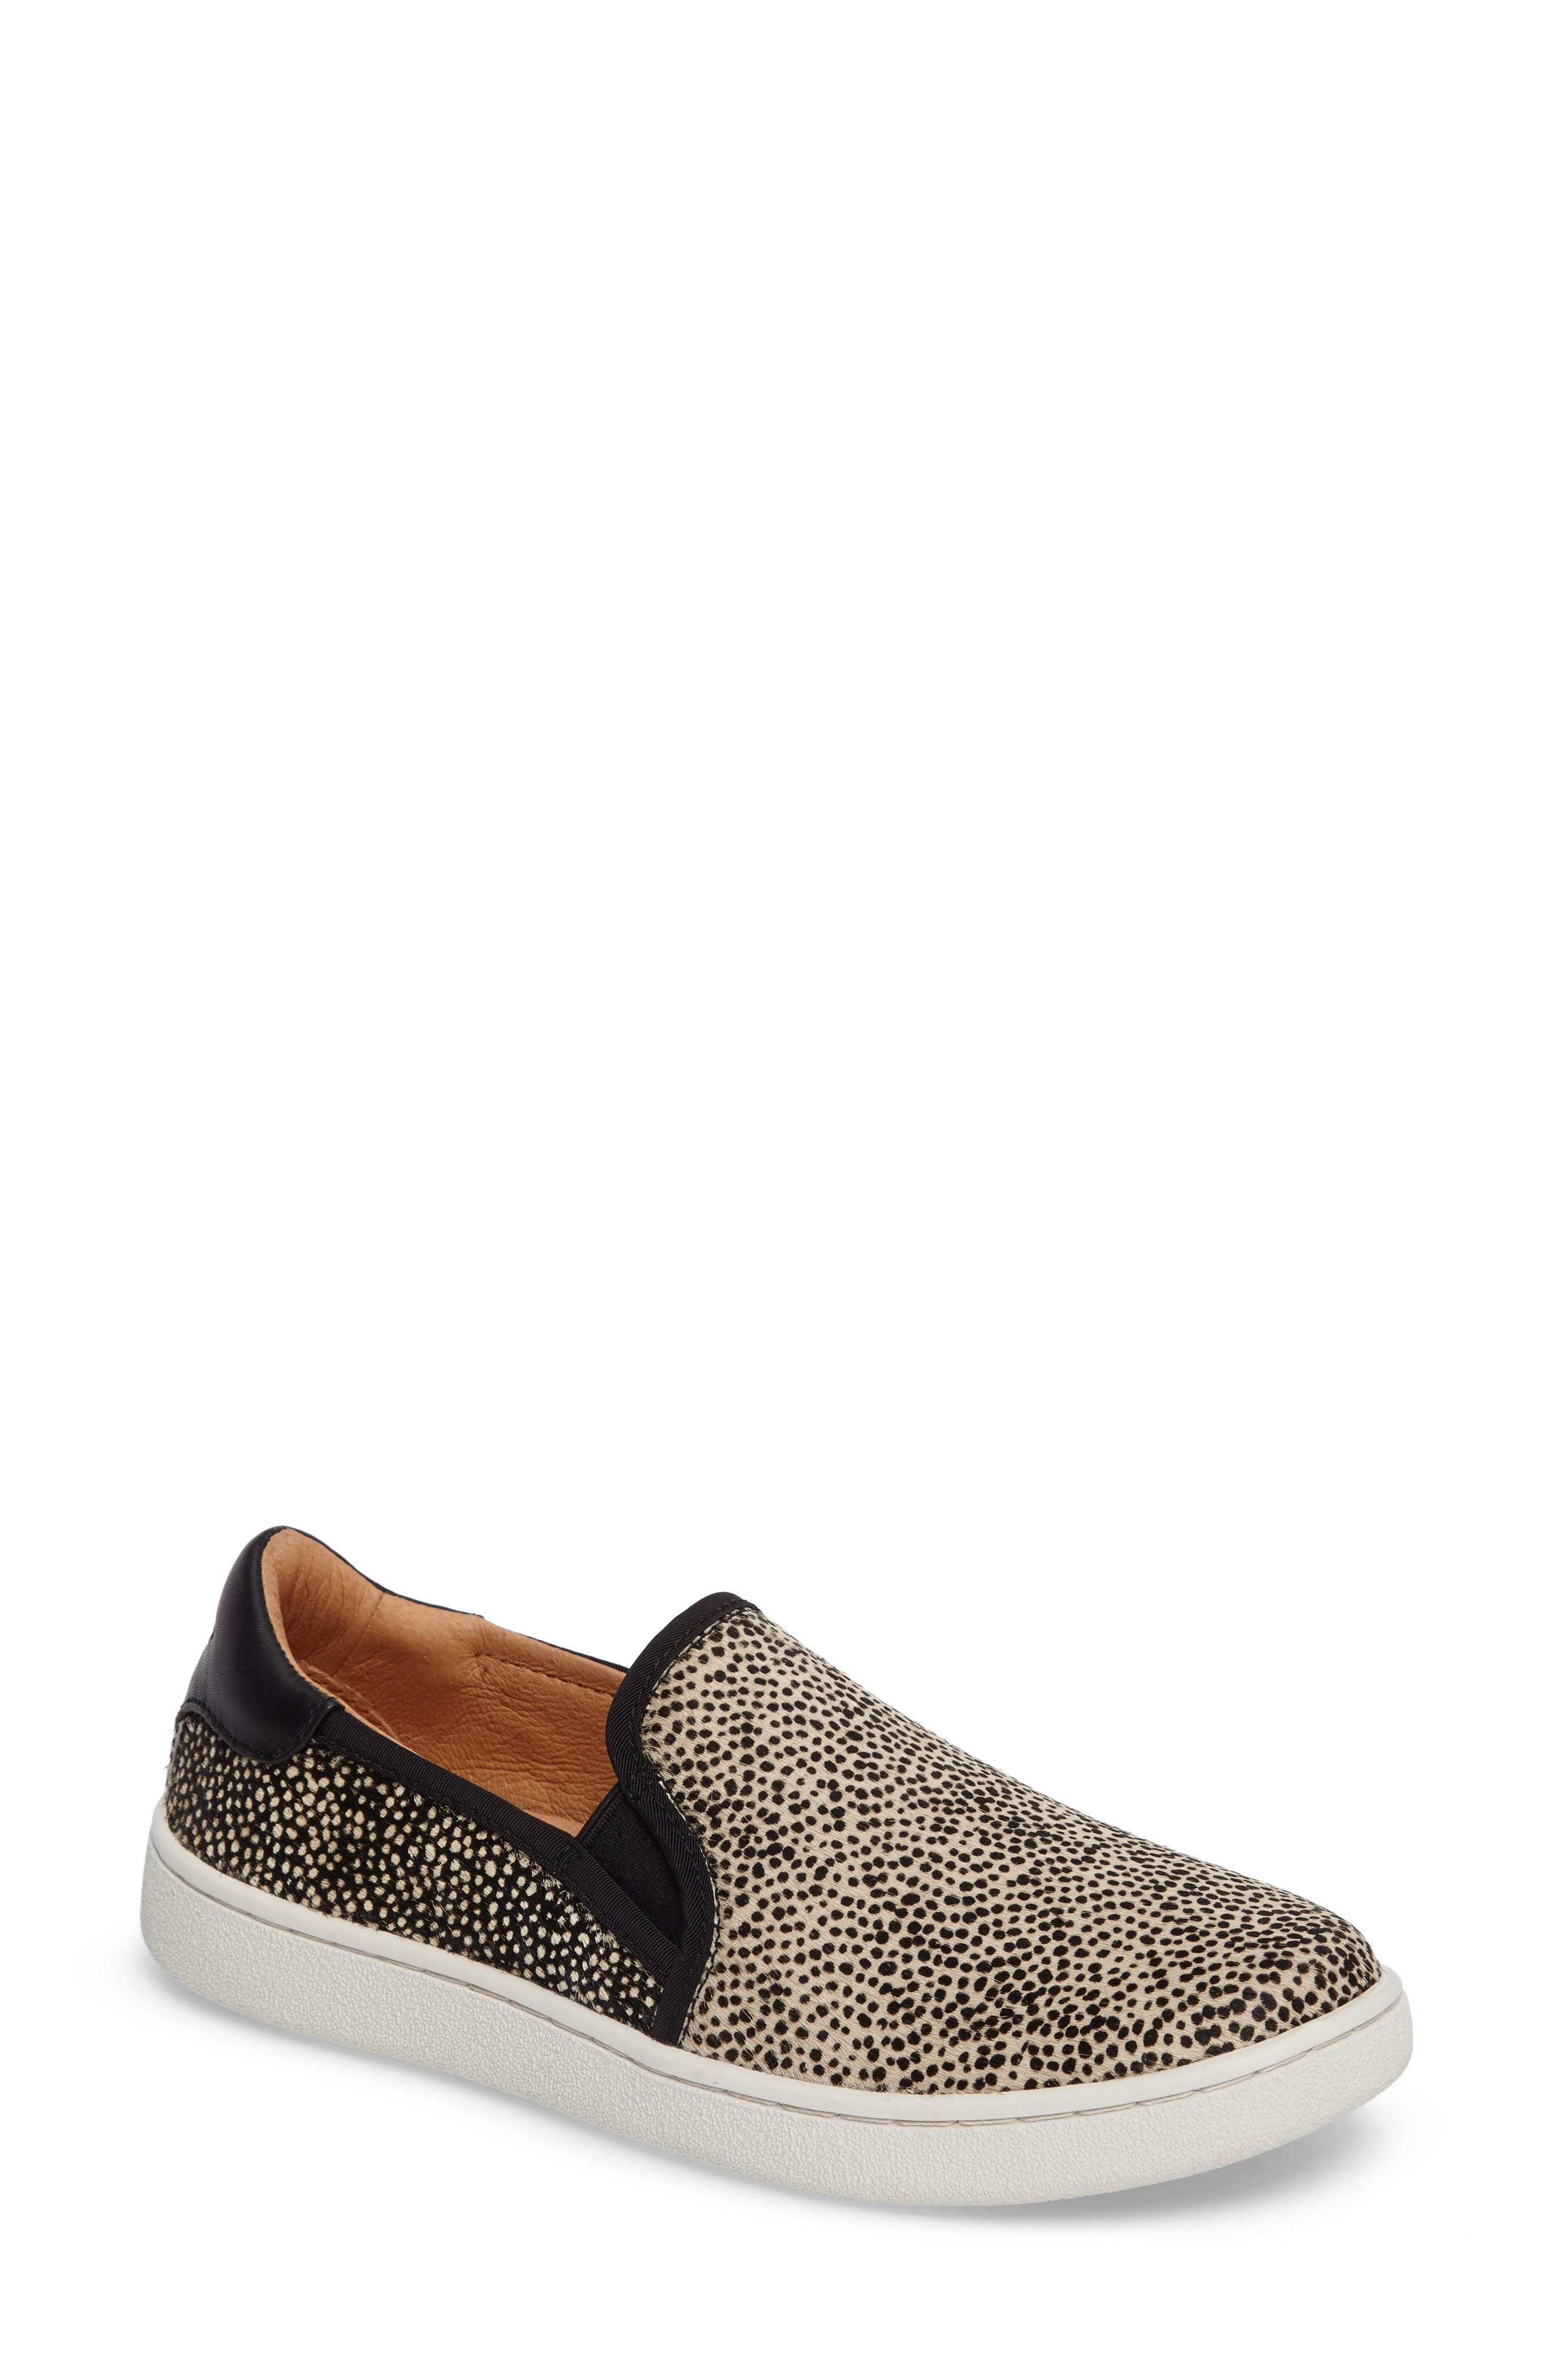 Cas Exotic Genuine Calf Hair Slip-On Sneaker,                         Main,                         color, Black/ Tan Dotted Leather